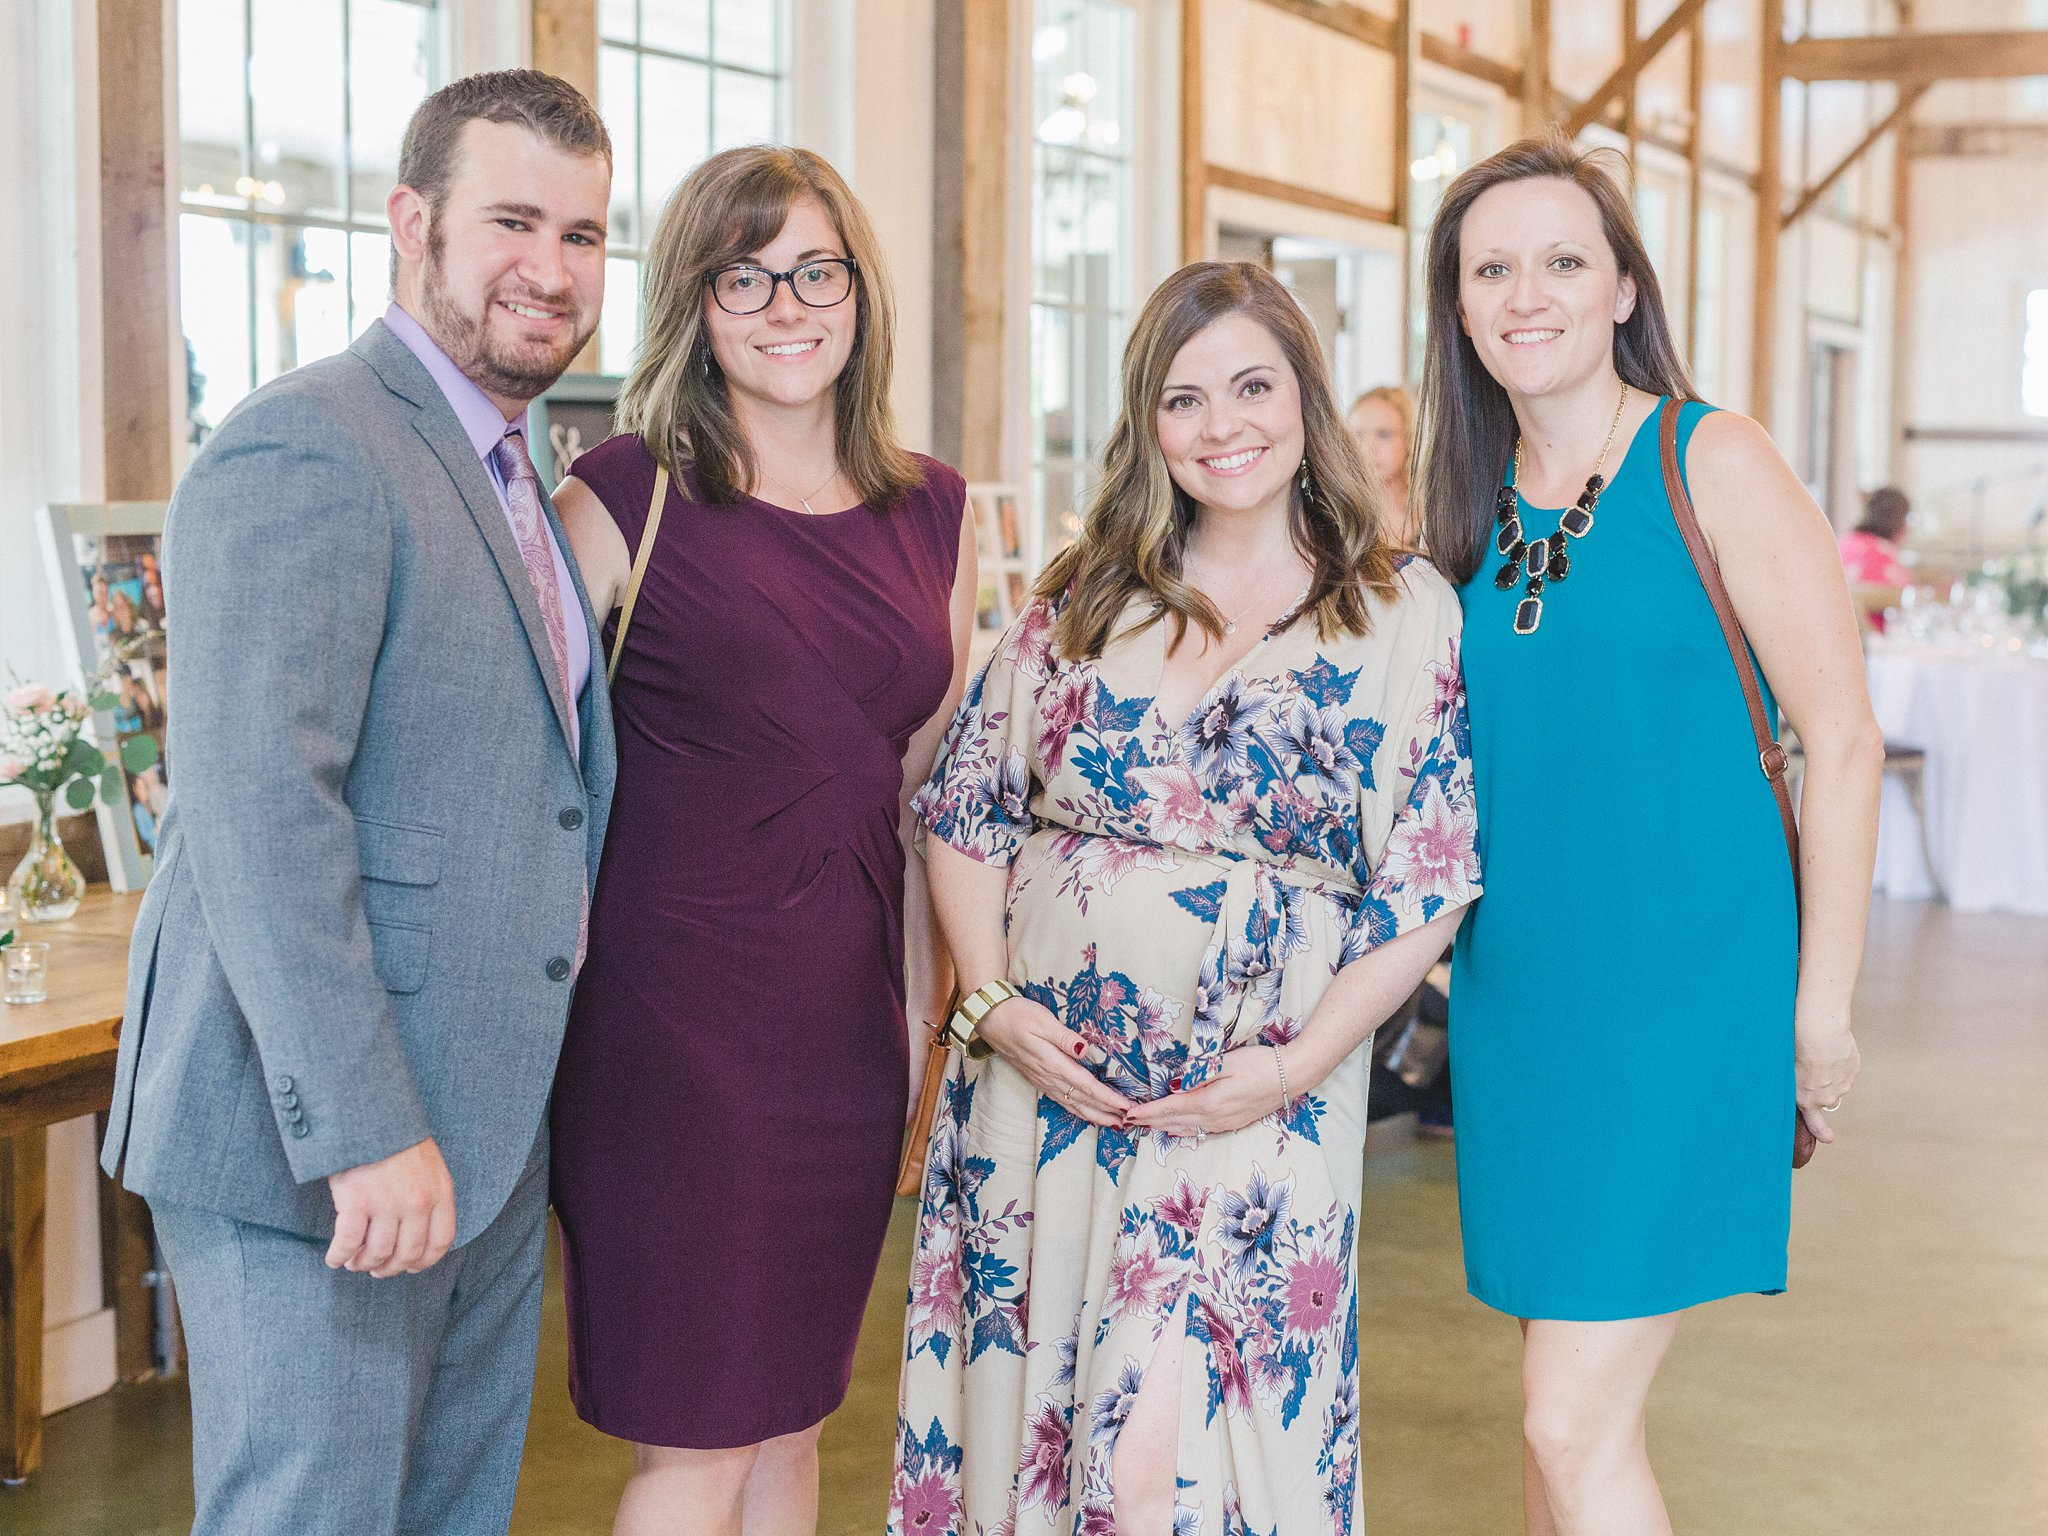 Guests at Stonefields Loft married at Stonefields, Amy Pinder Photography